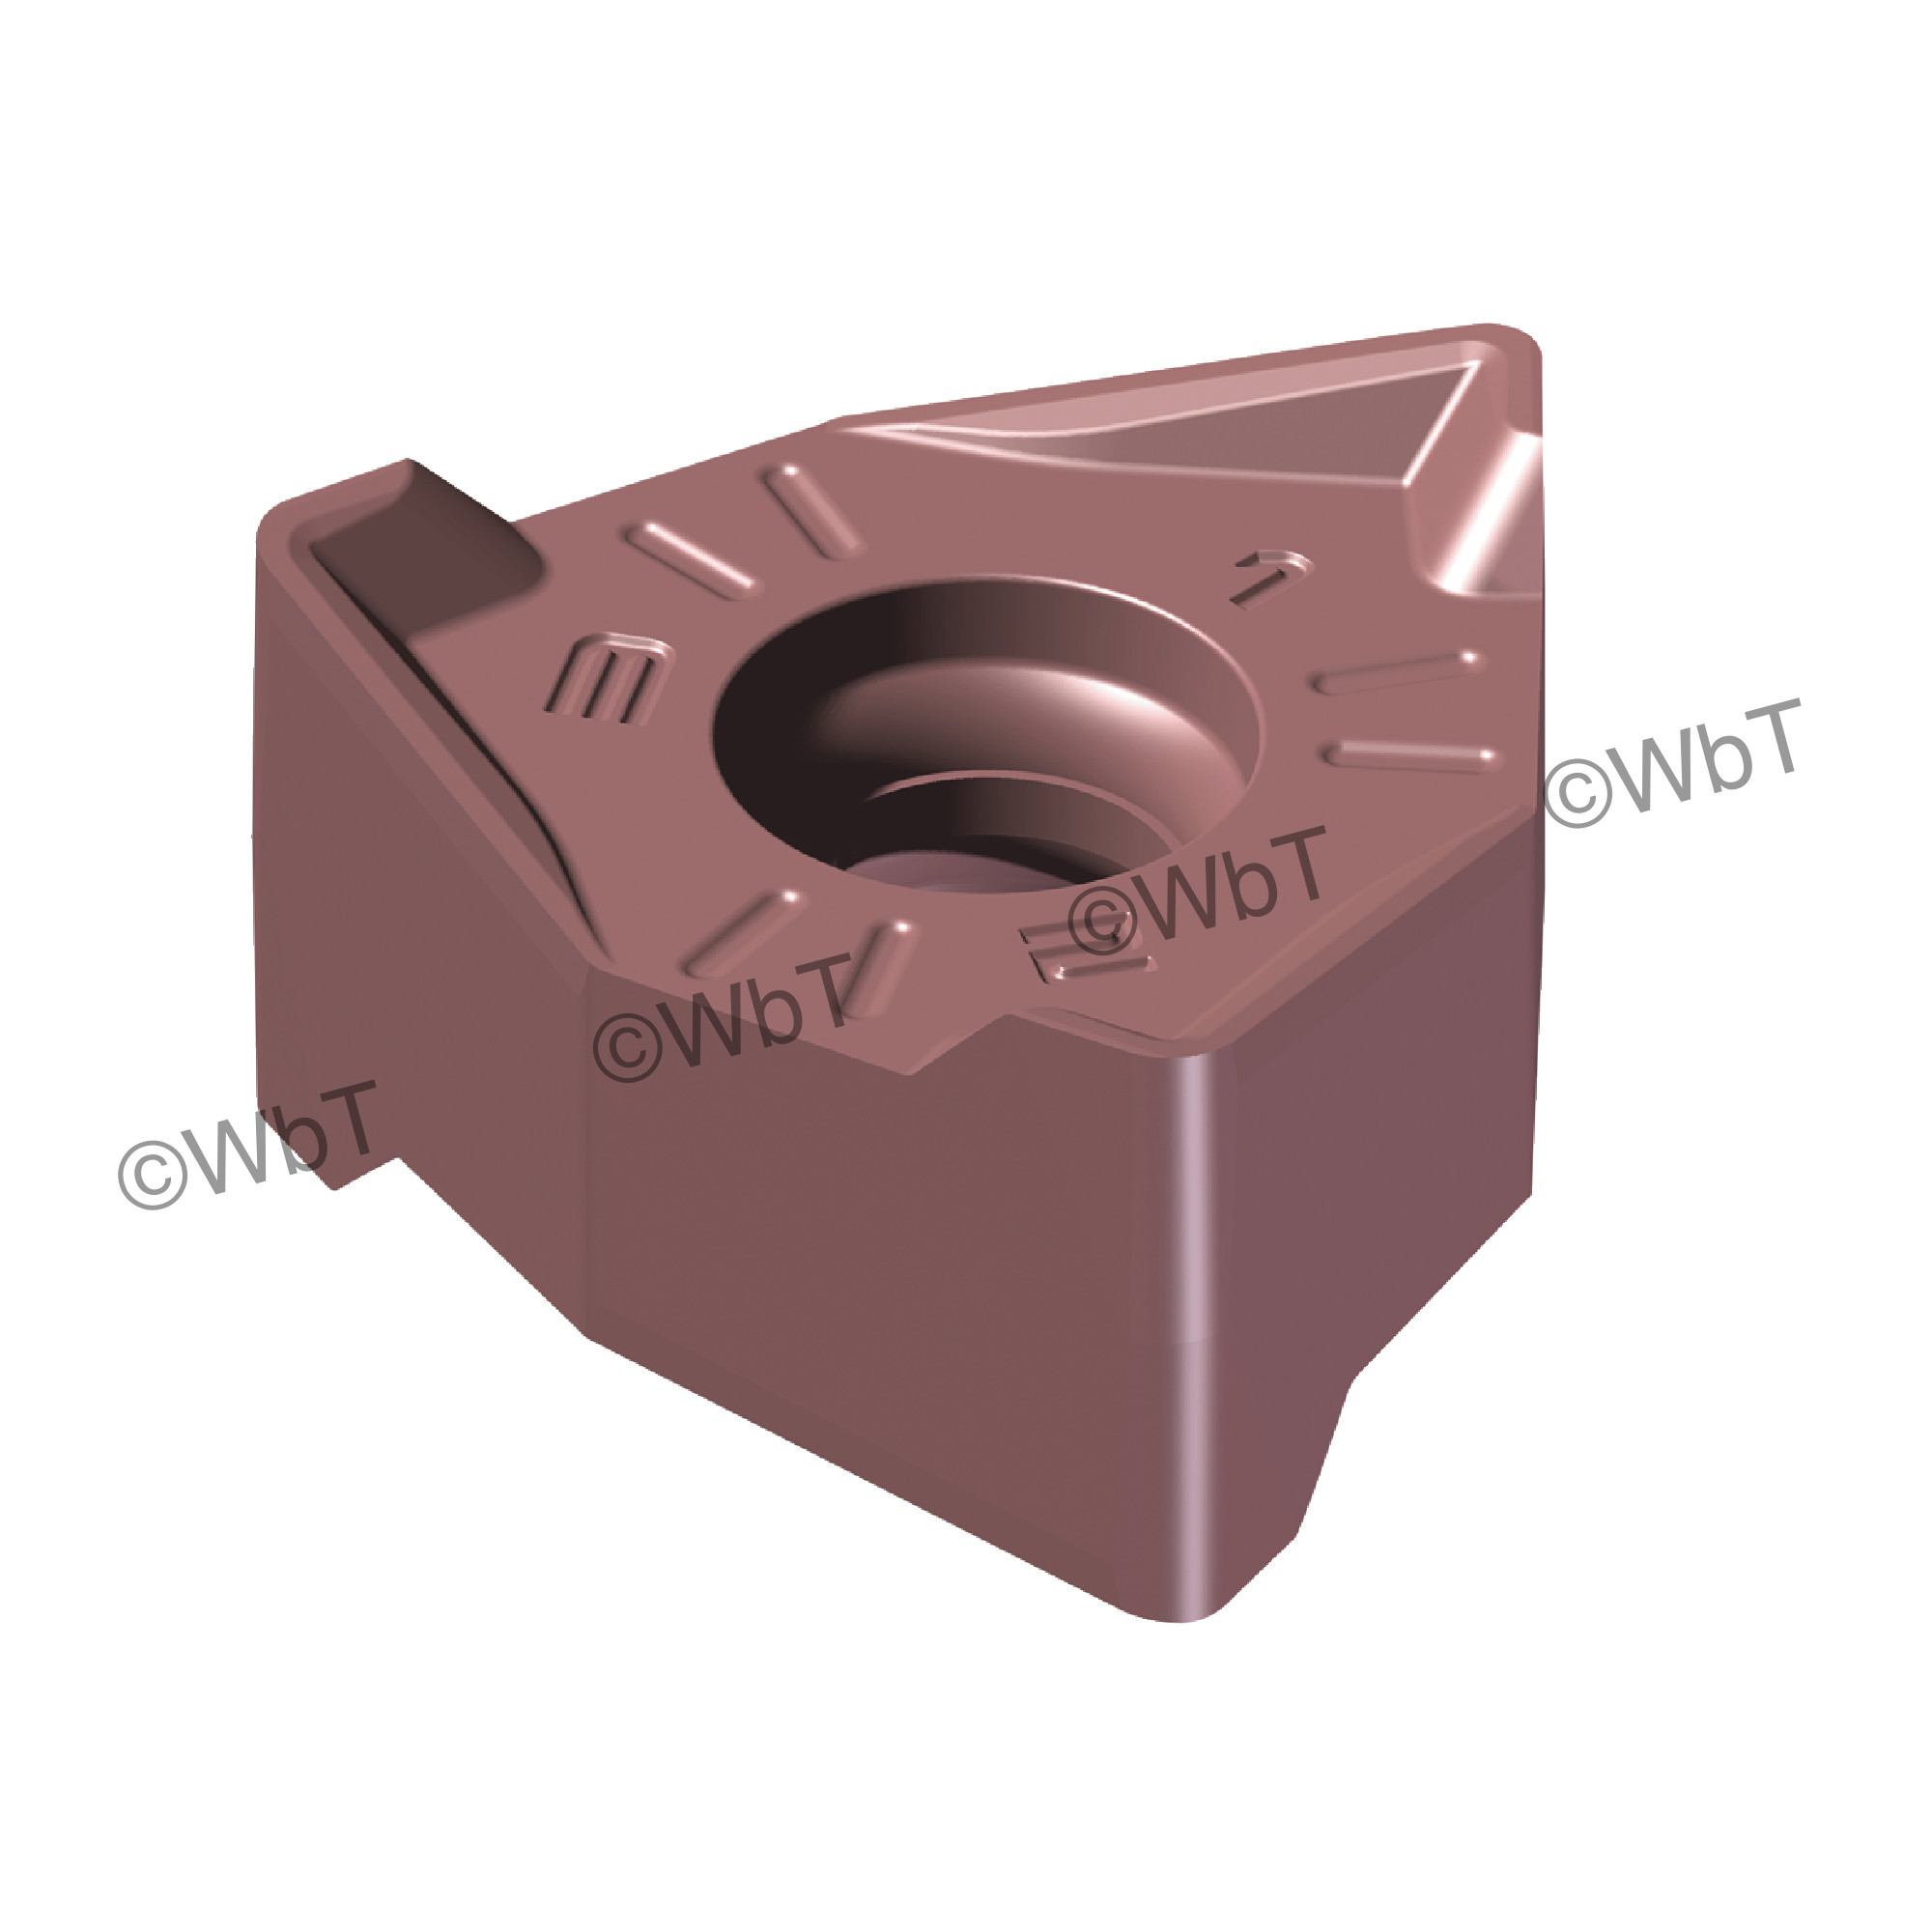 AKUMA - XNEX442R-R1 PM15M Special Shape / INDEXABLE Carbide MILLING INSERT